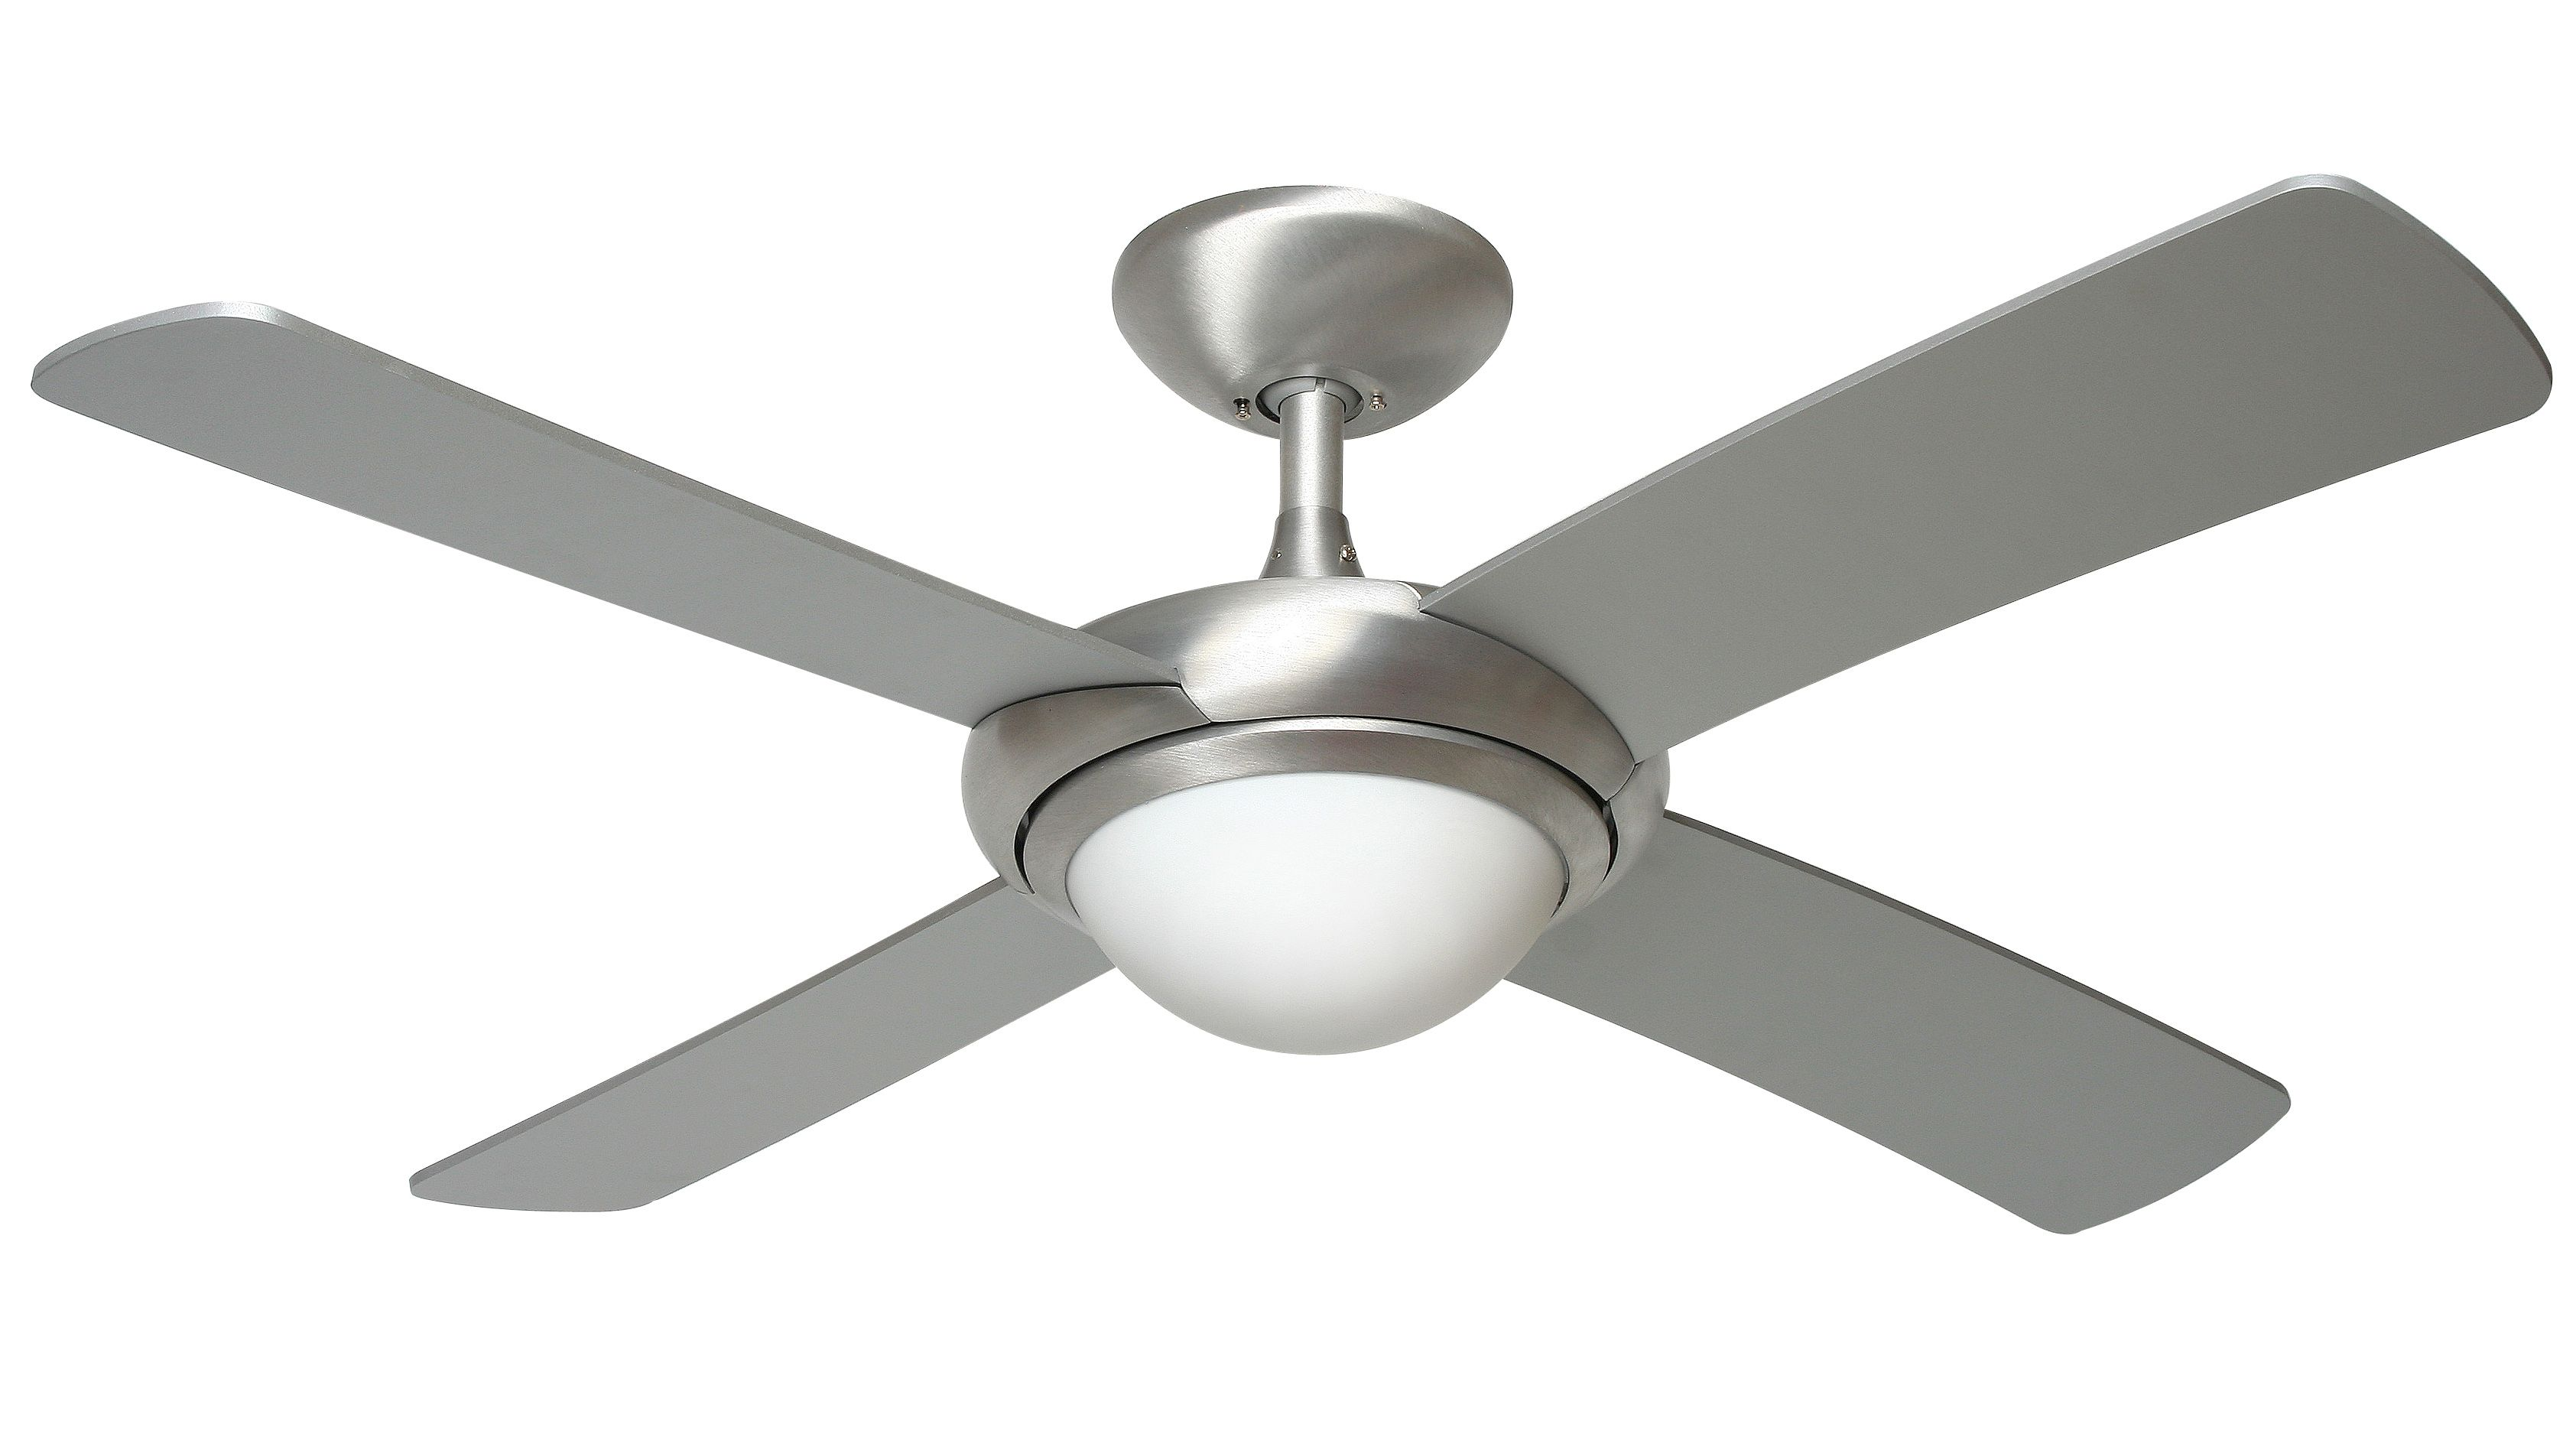 control fans universal beach image fan remote ceiling landscape boys of three